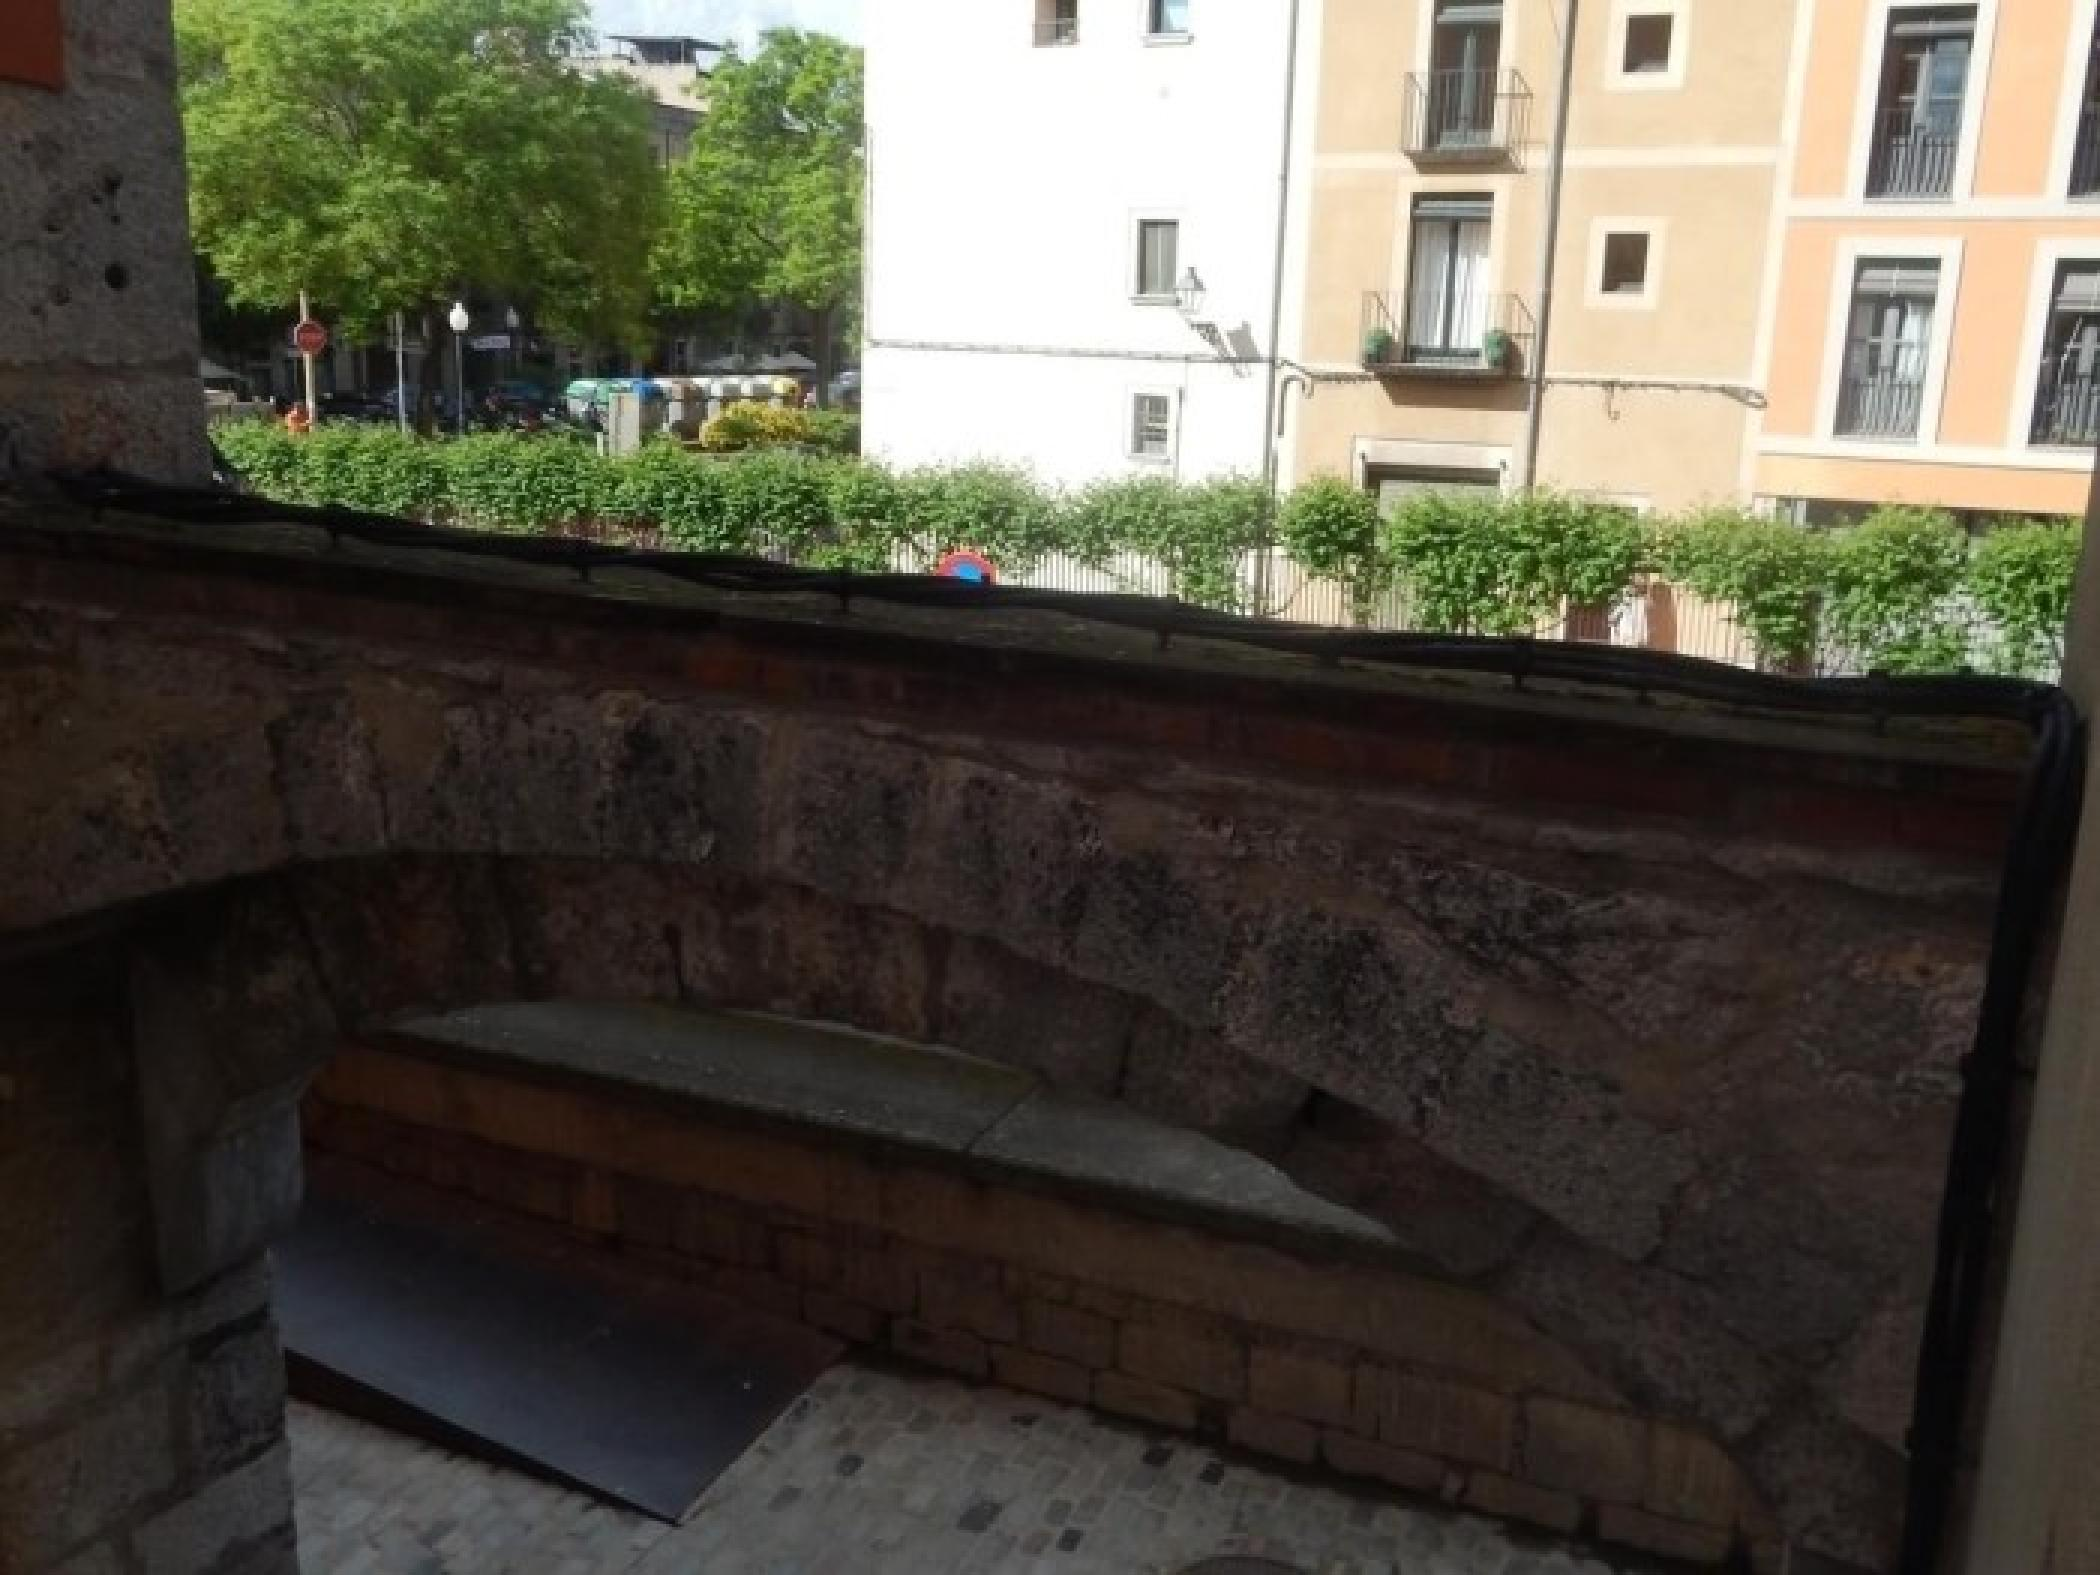 Rent Apartment in Girona - Girona Pou Rodó 22 - 15